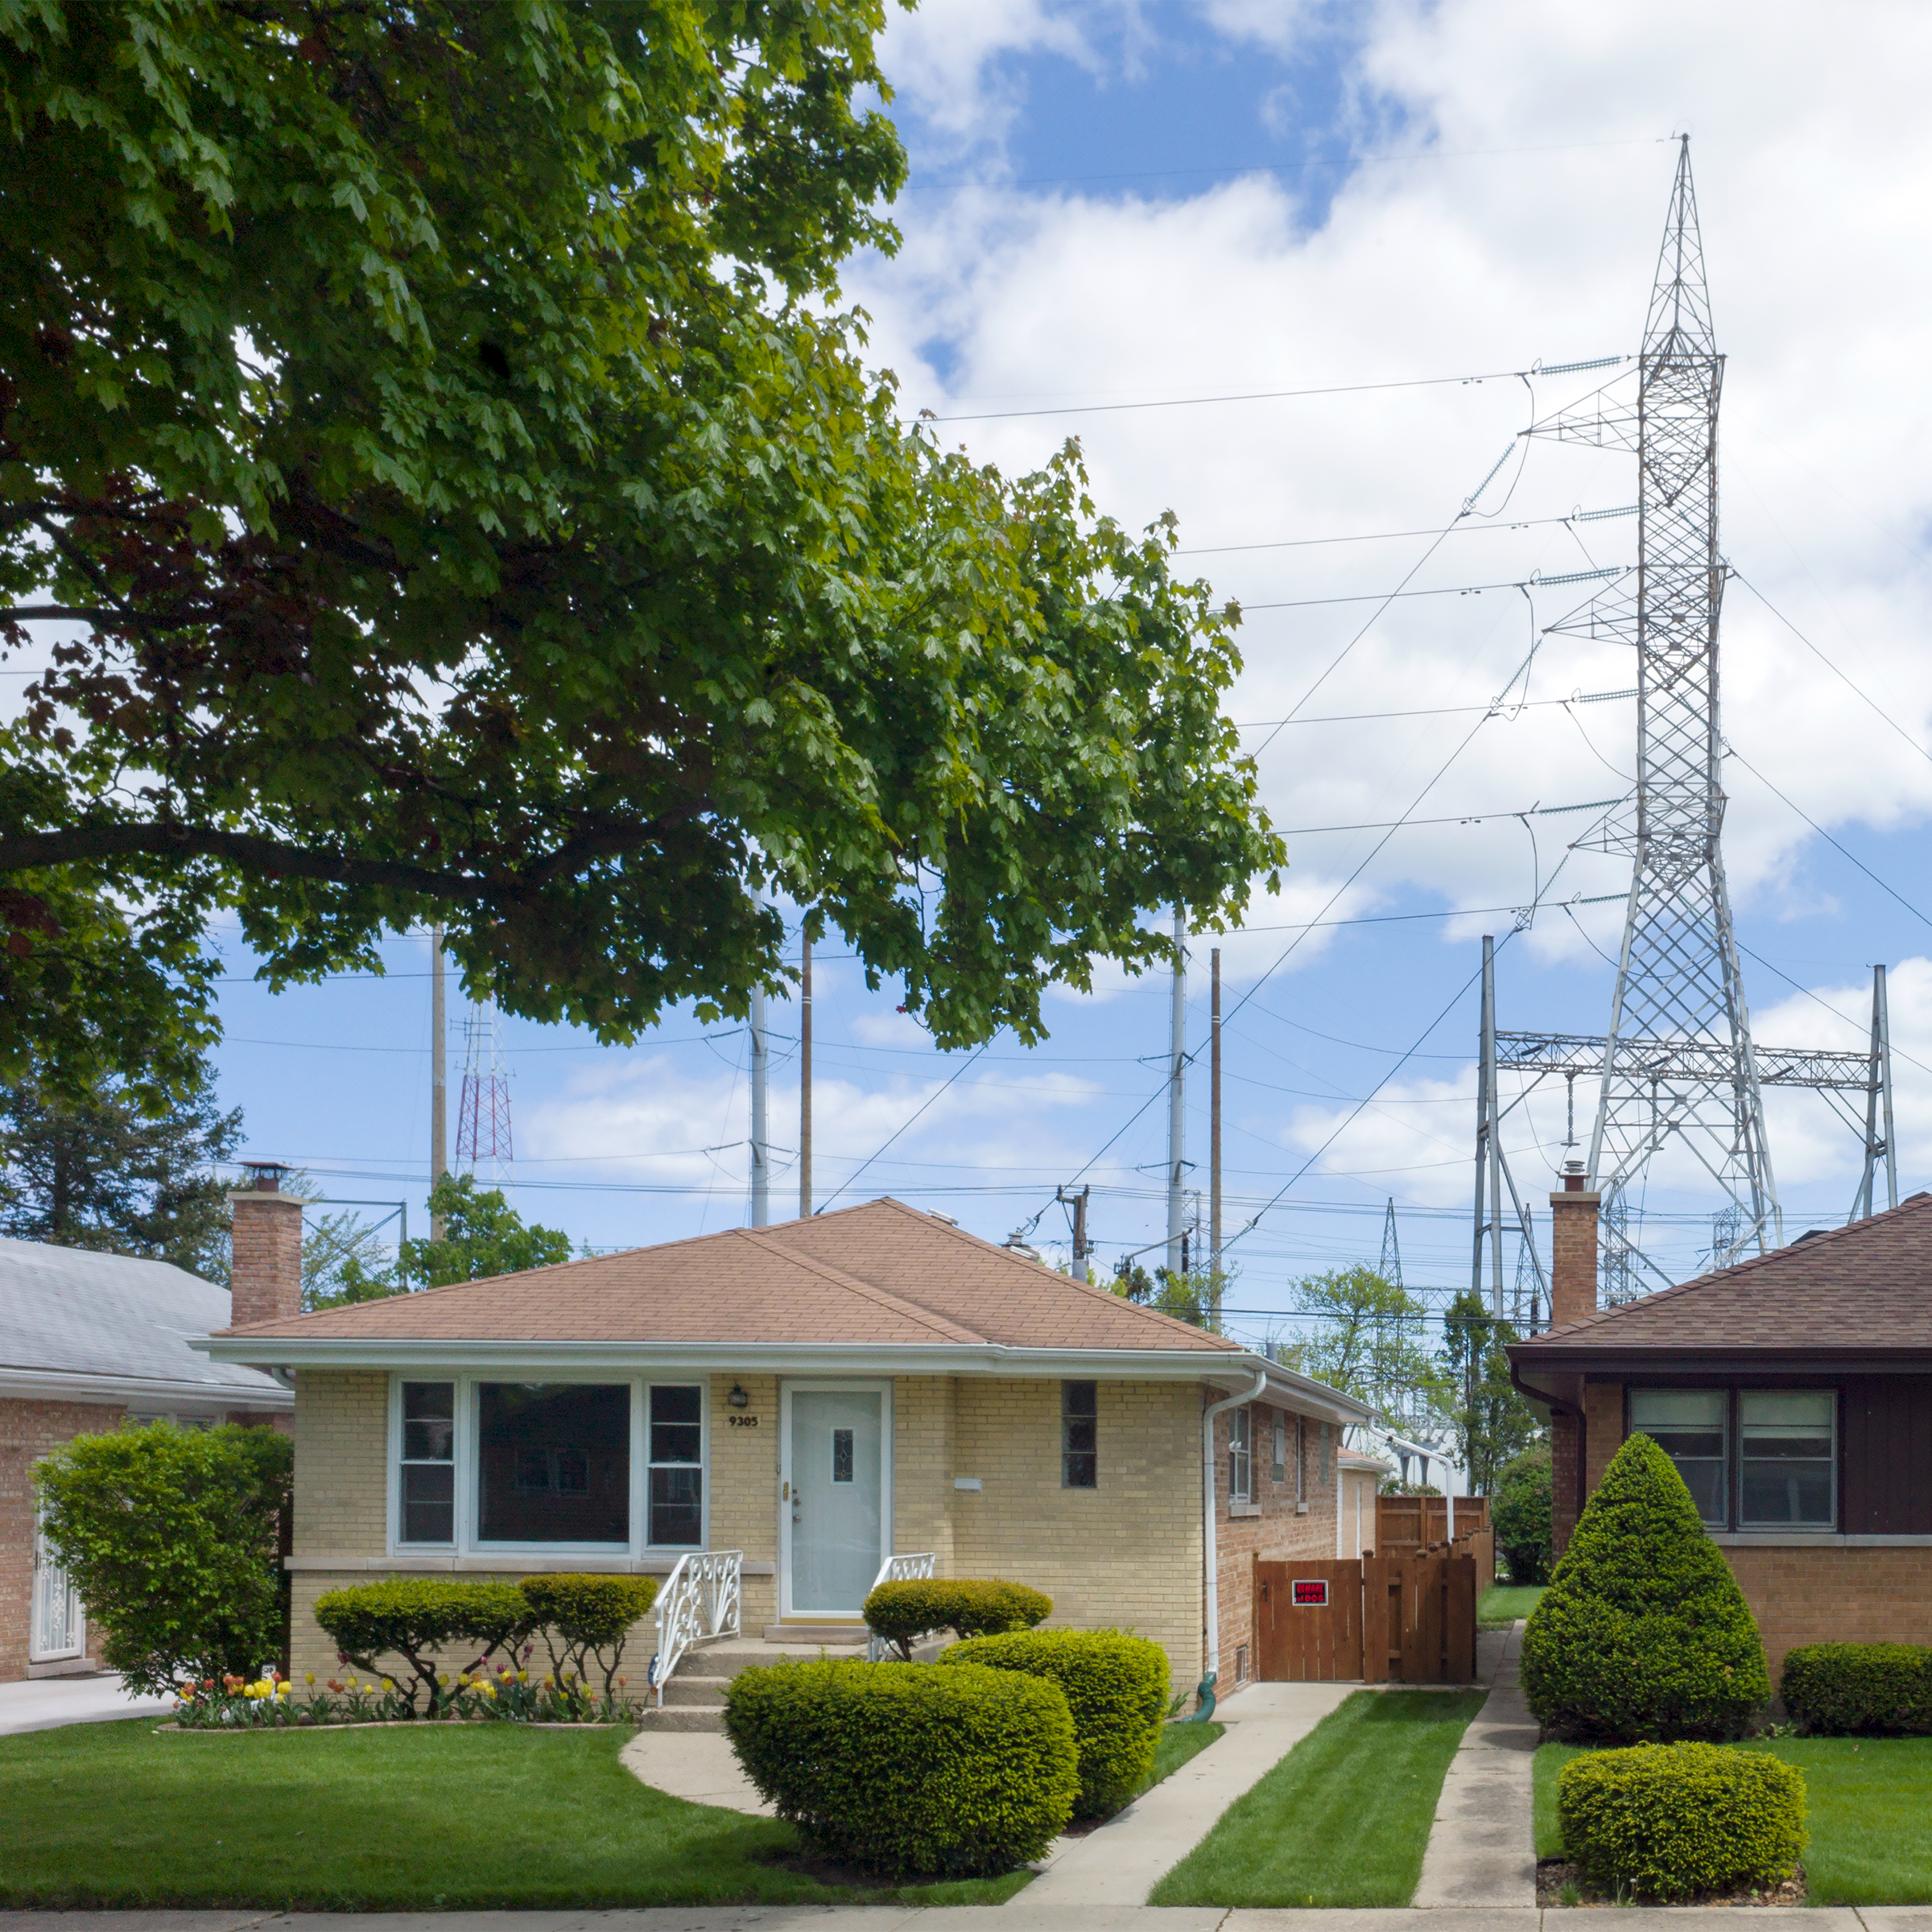 Skokie Homes and Substation.jpg